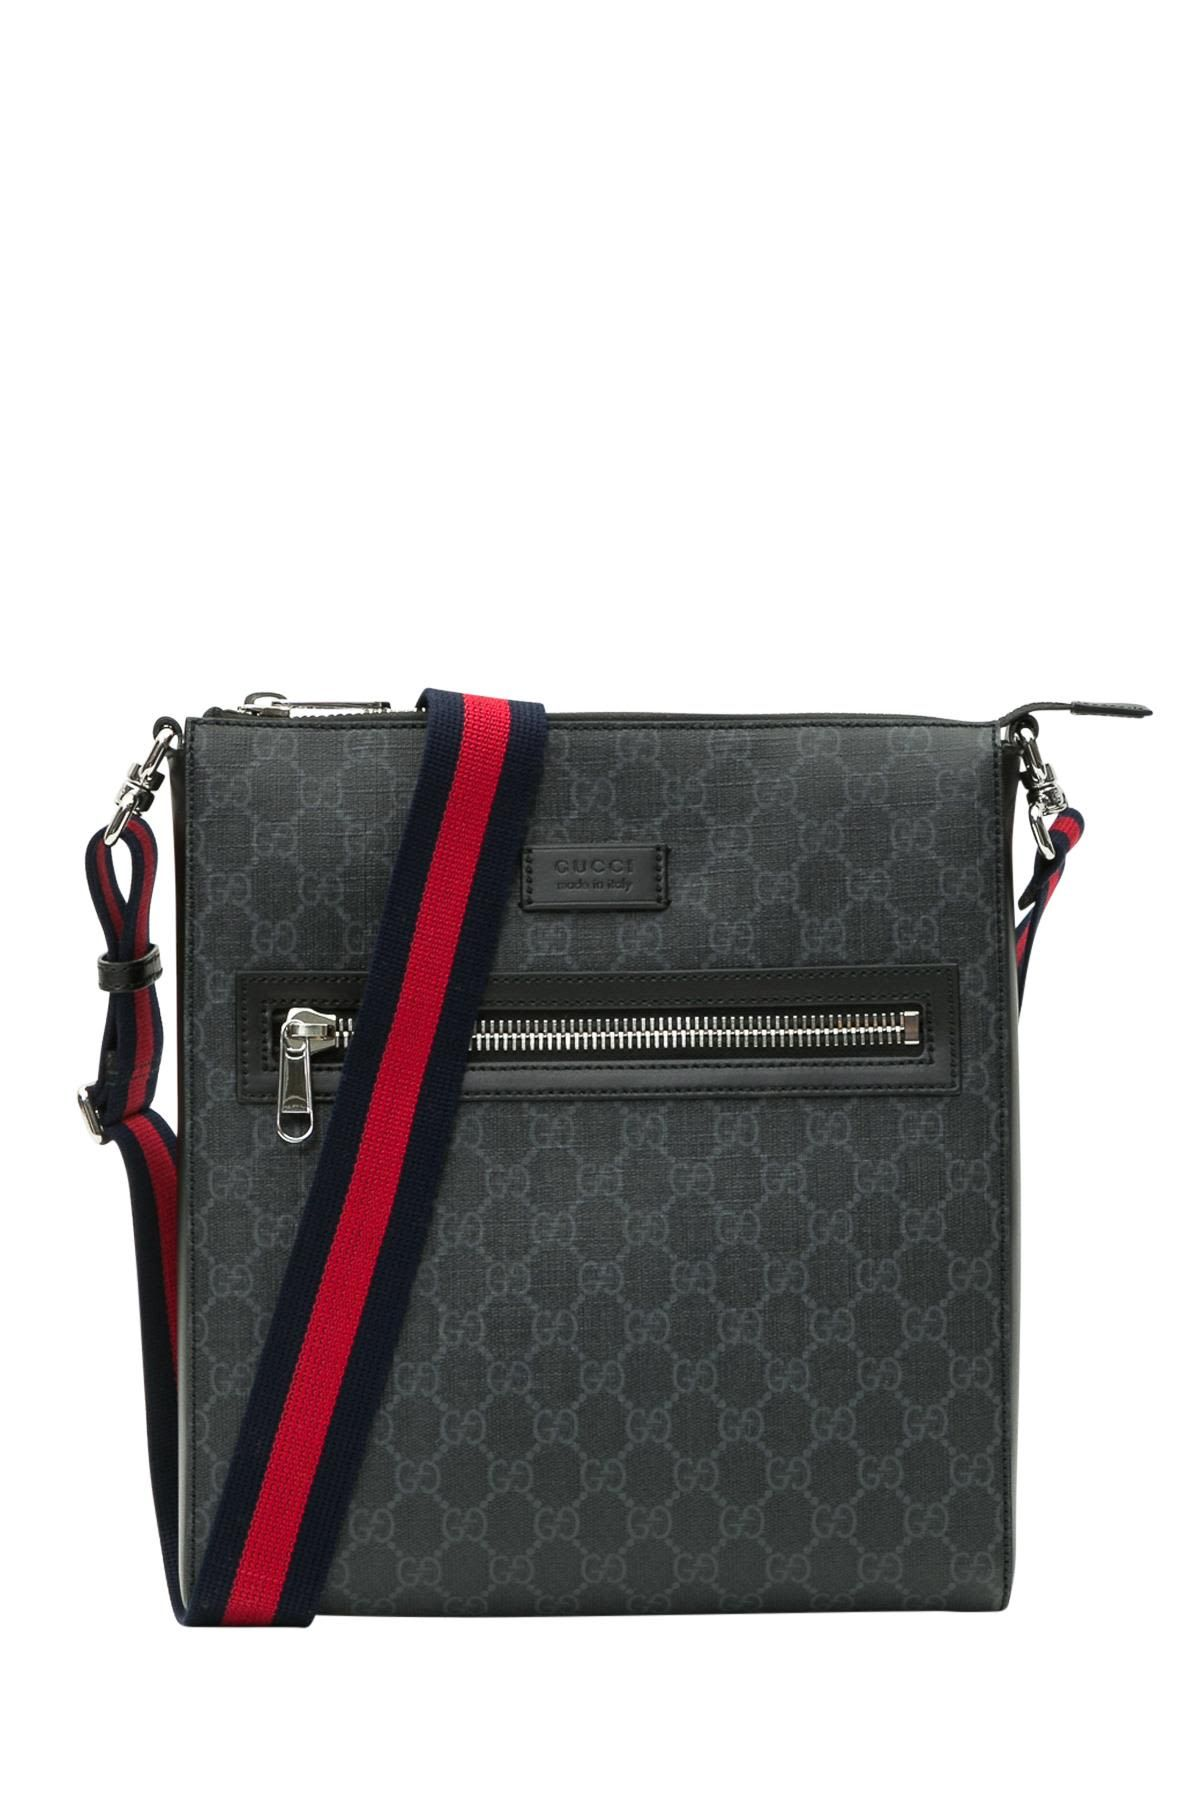 8dddda6d3b3 GUCCI GG SUPREME MESSENGER. #gucci #bags #canvas #leather #lining ...